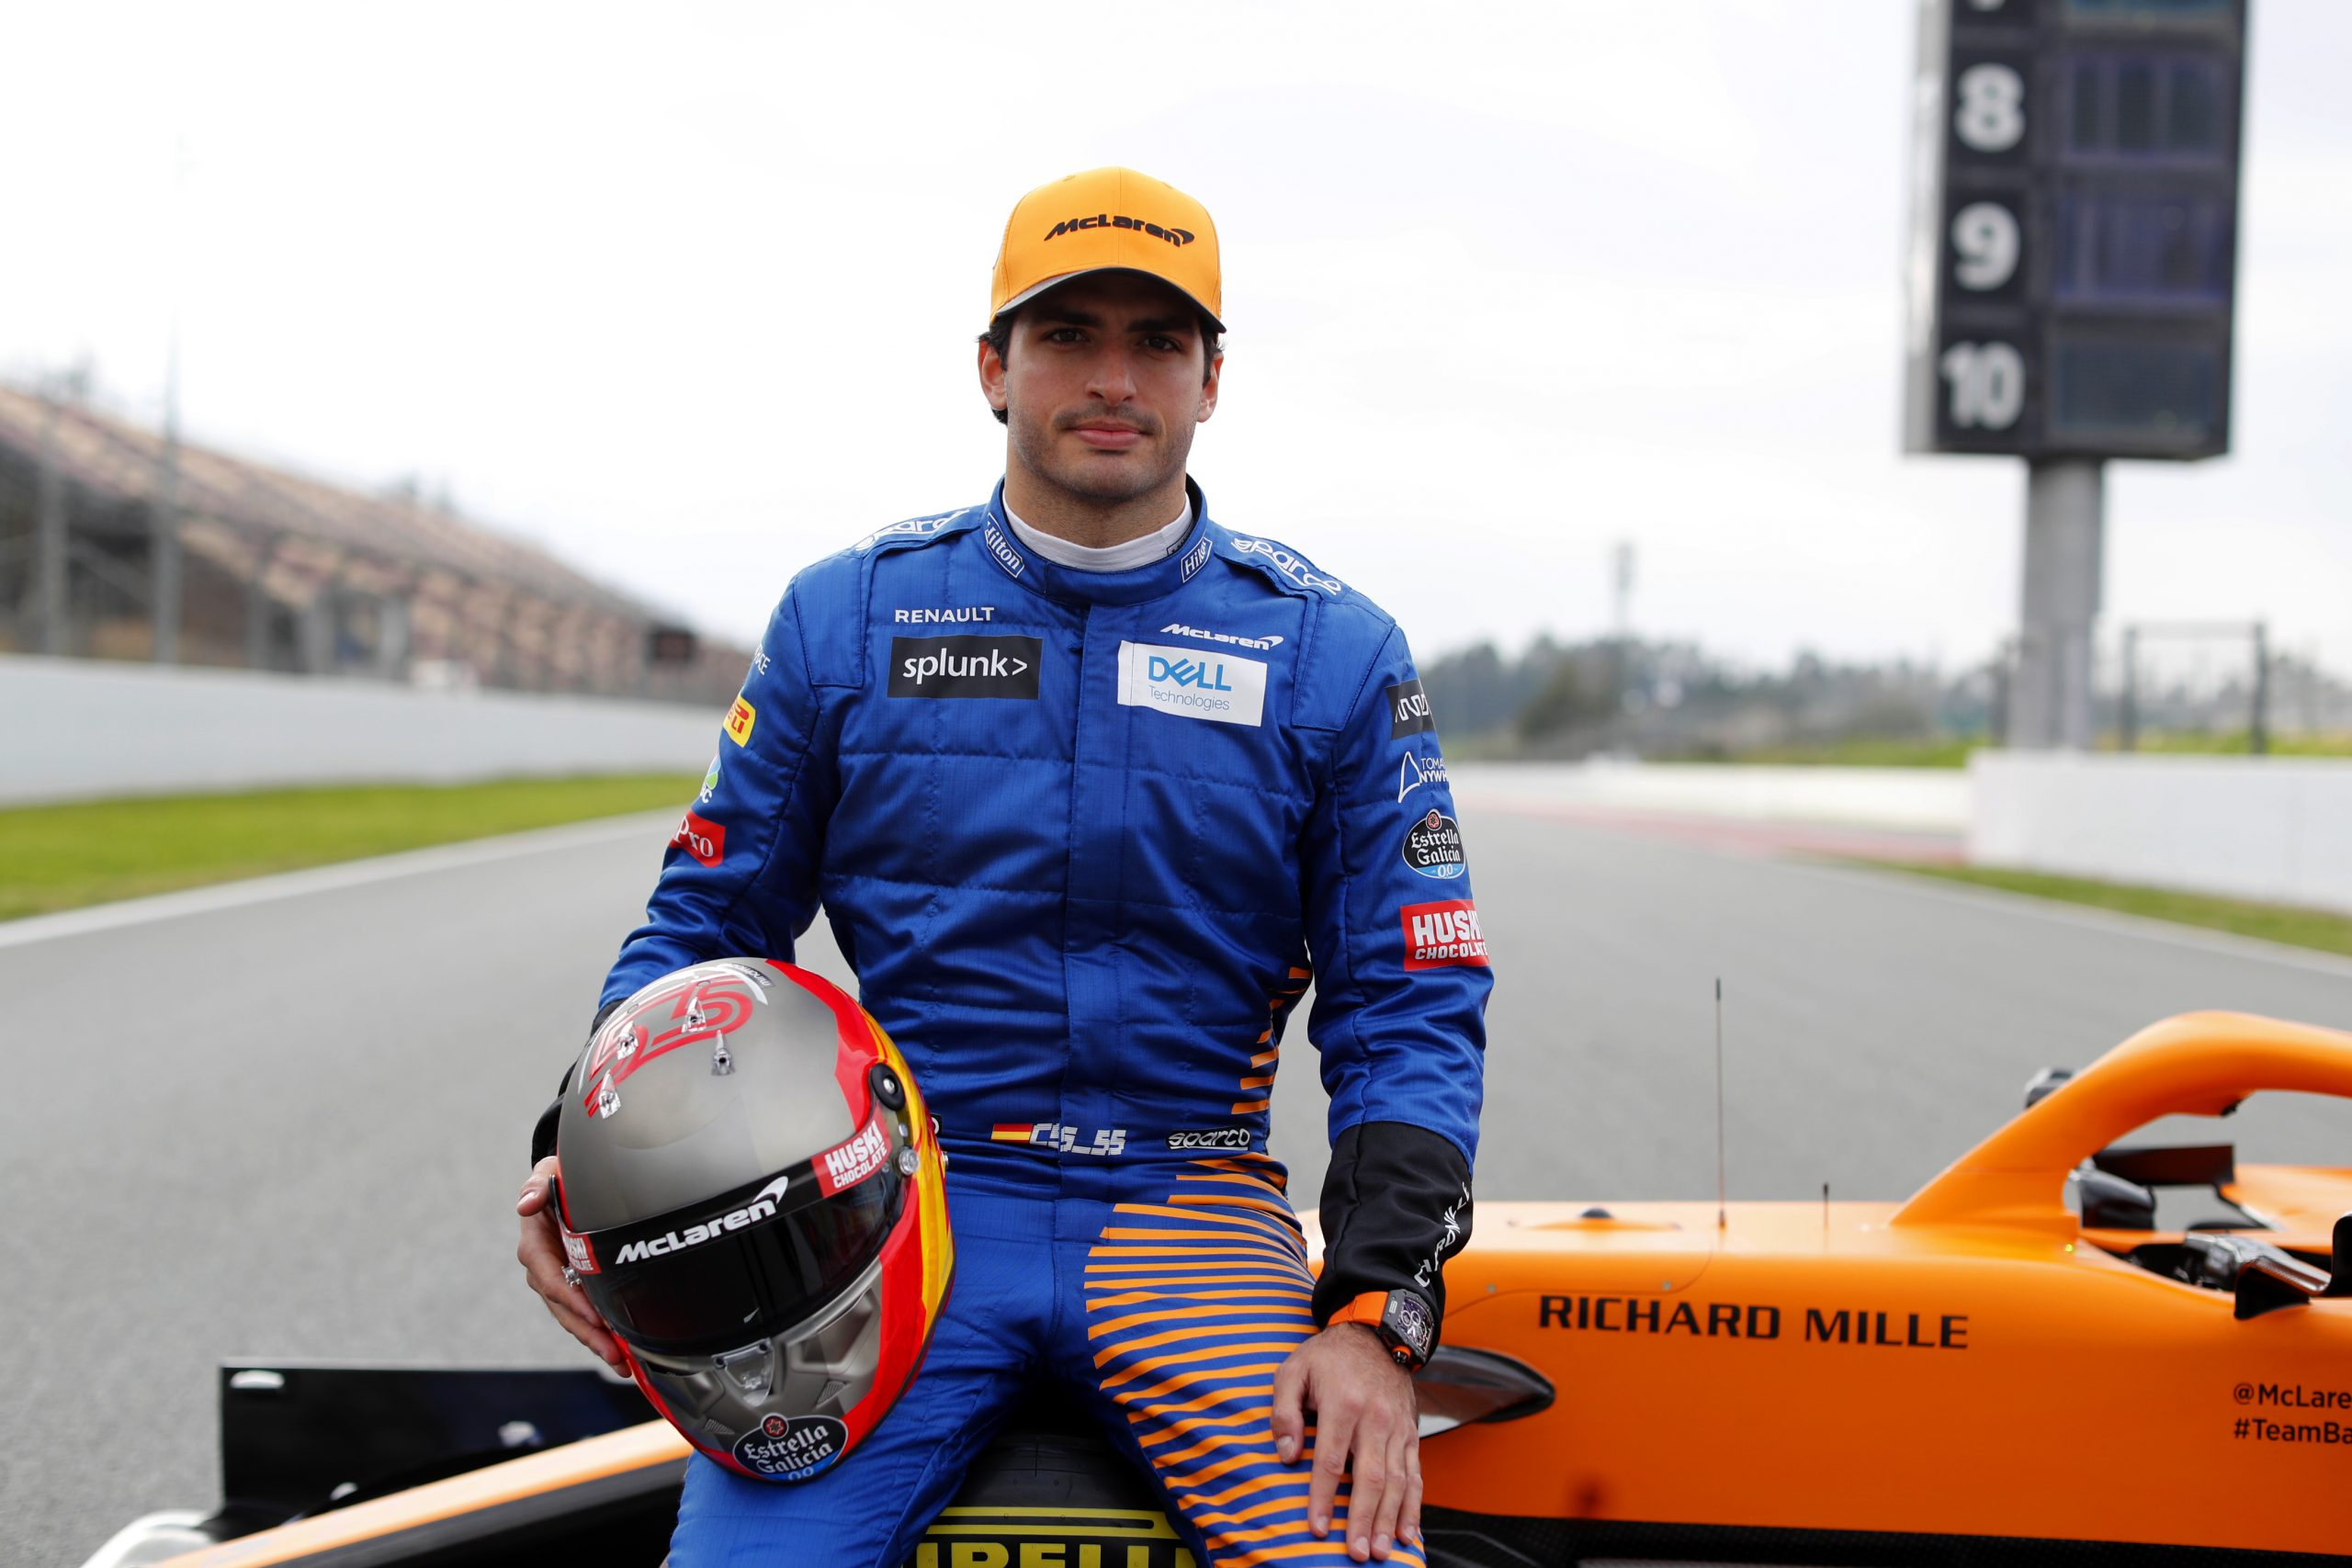 Sainz hopes to test 2020 Ferrari in Abu Dhabi